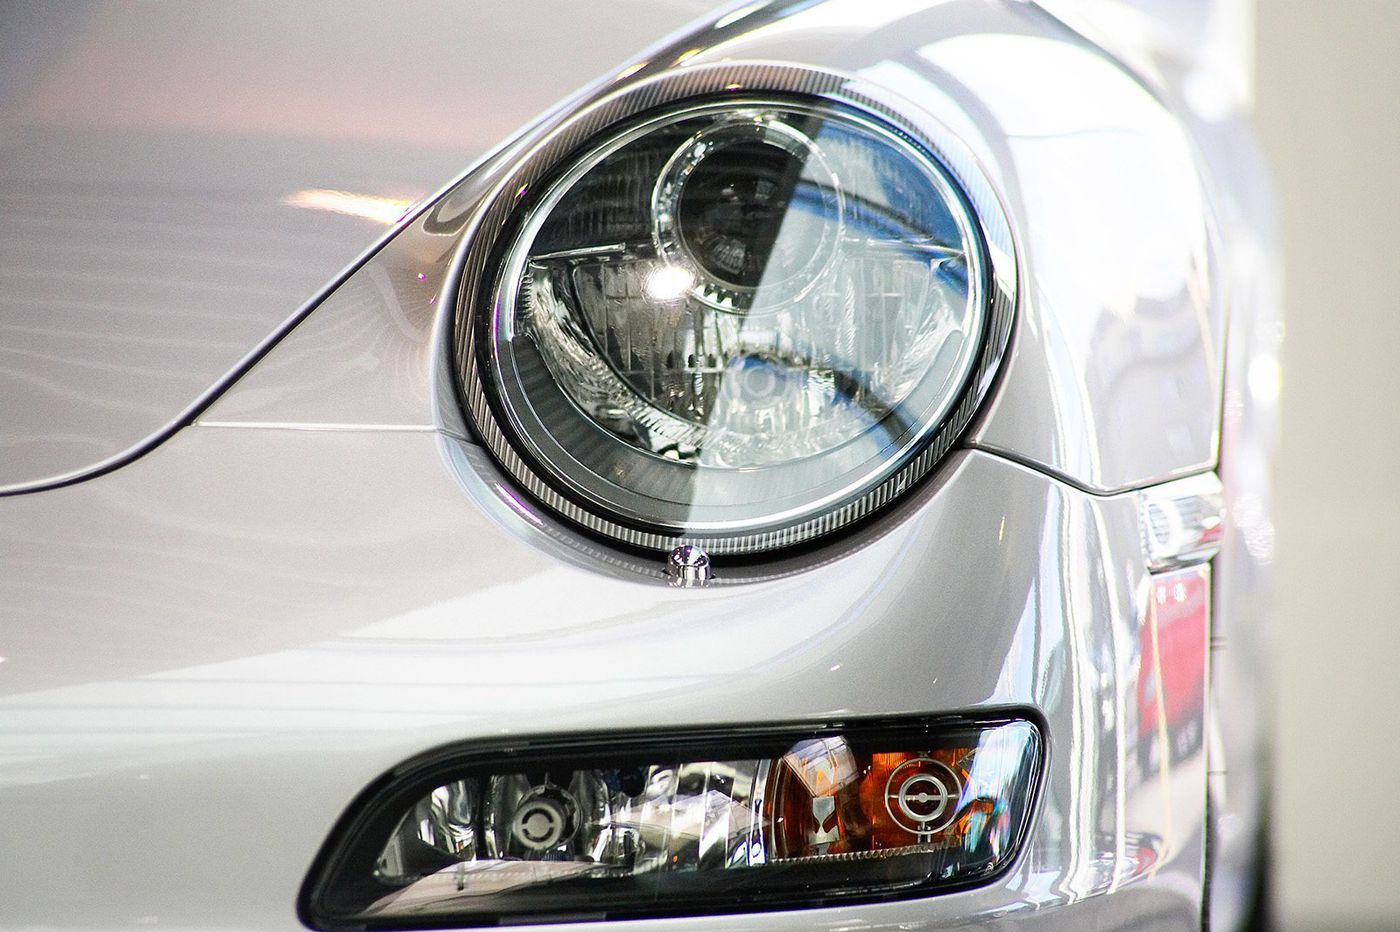 Motormouth: No matter what the cost, replace burnt-out headlights immediately